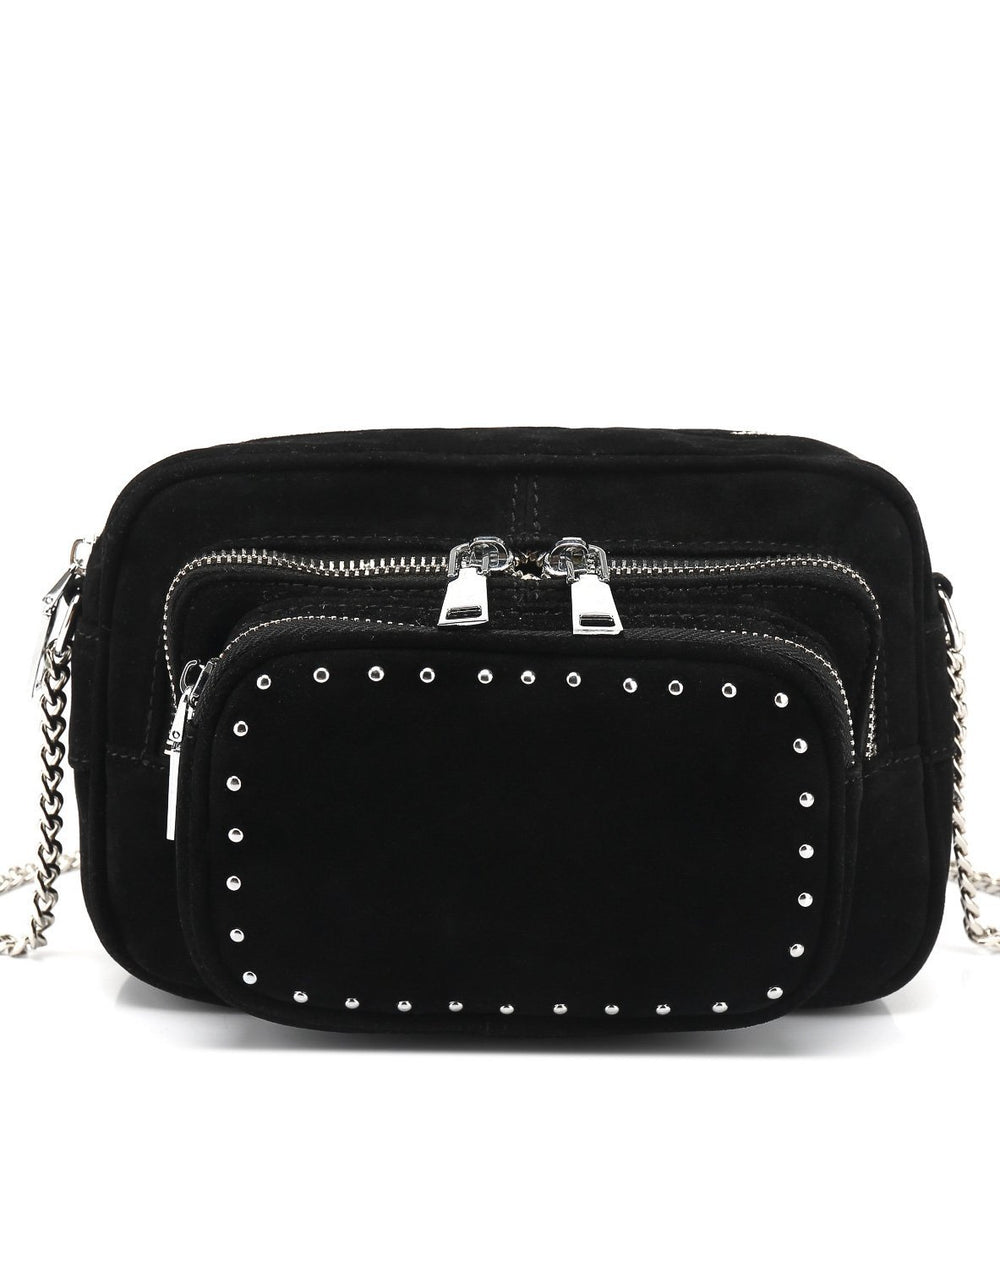 Noella Nelly bag black - Online-Mode